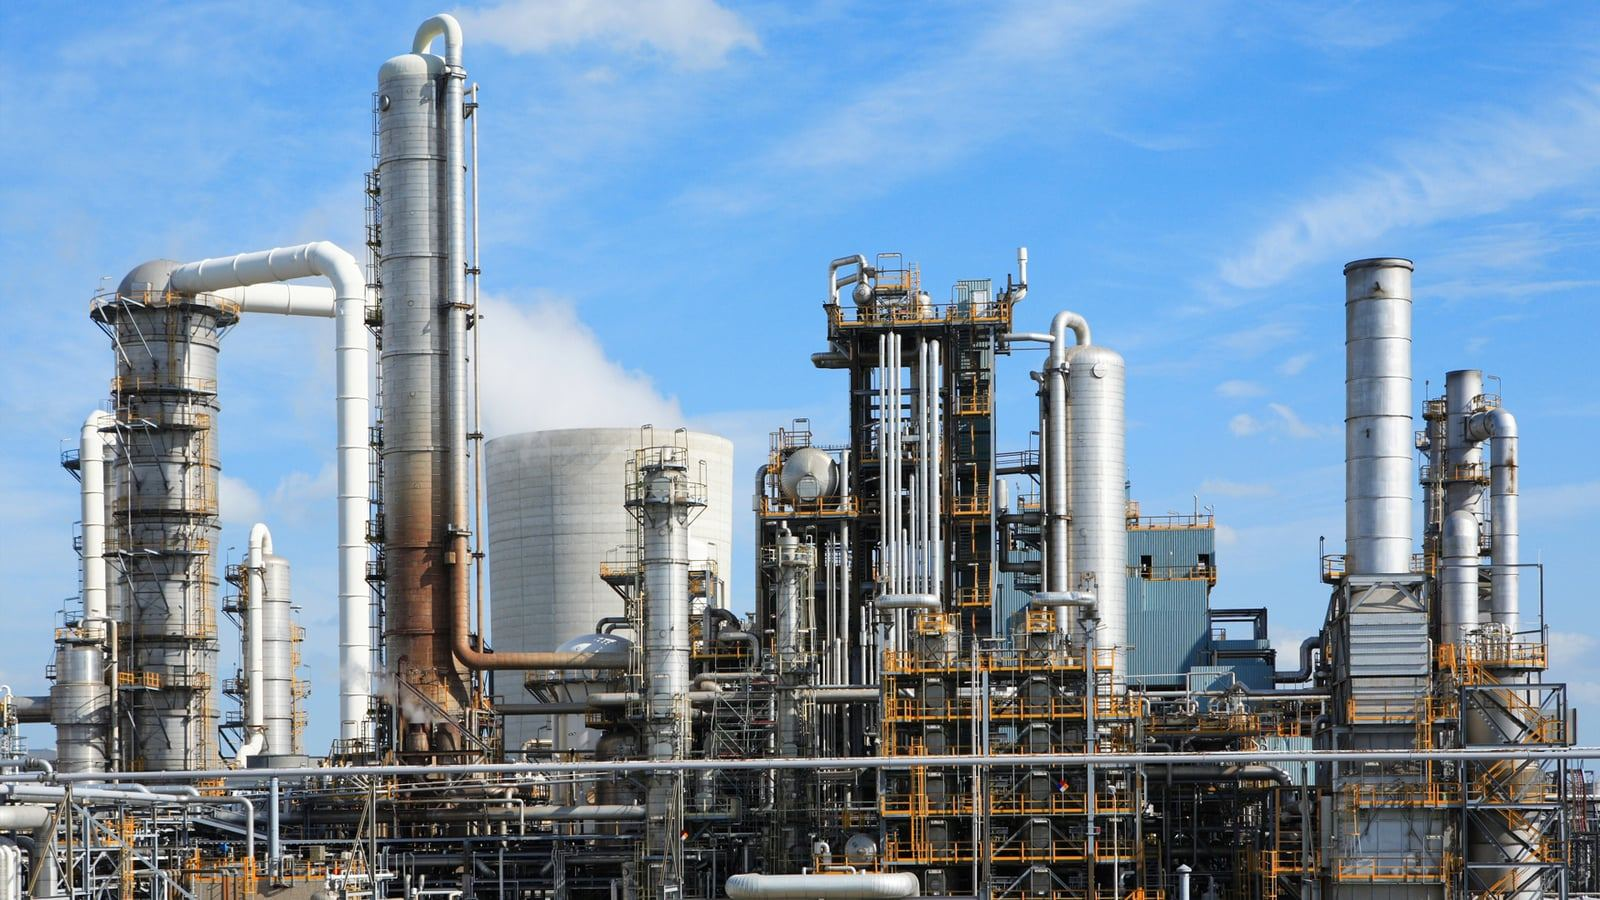 Methanol production unit to be launched at Navoiazot chemical enterprise in Uzbekistan